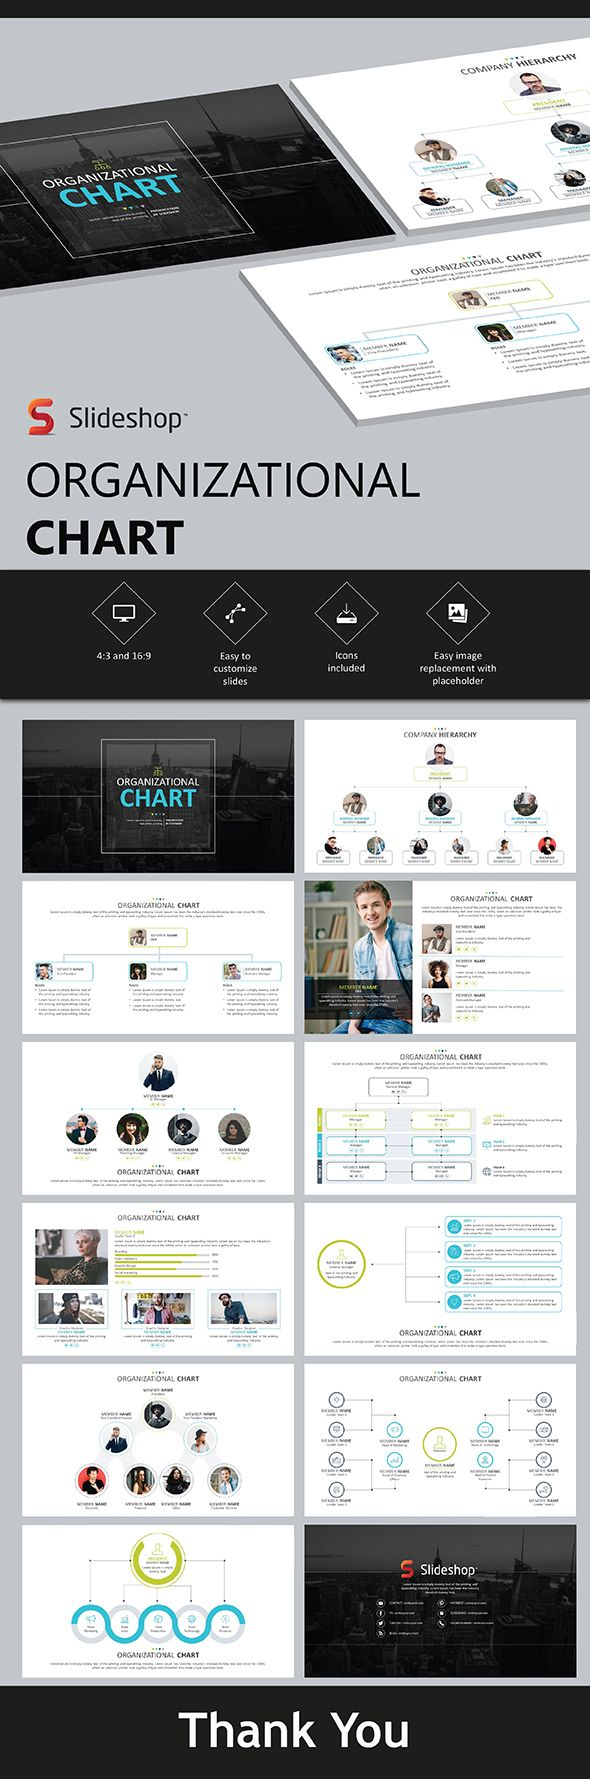 Organizational Chart - PowerPoint Templates Presentation Templates Download here: https://graphicriver.net/item/organizational-chart/19853616?https://graphicriver.net/item/marketing-mix/19853617?ref=classicdesignp